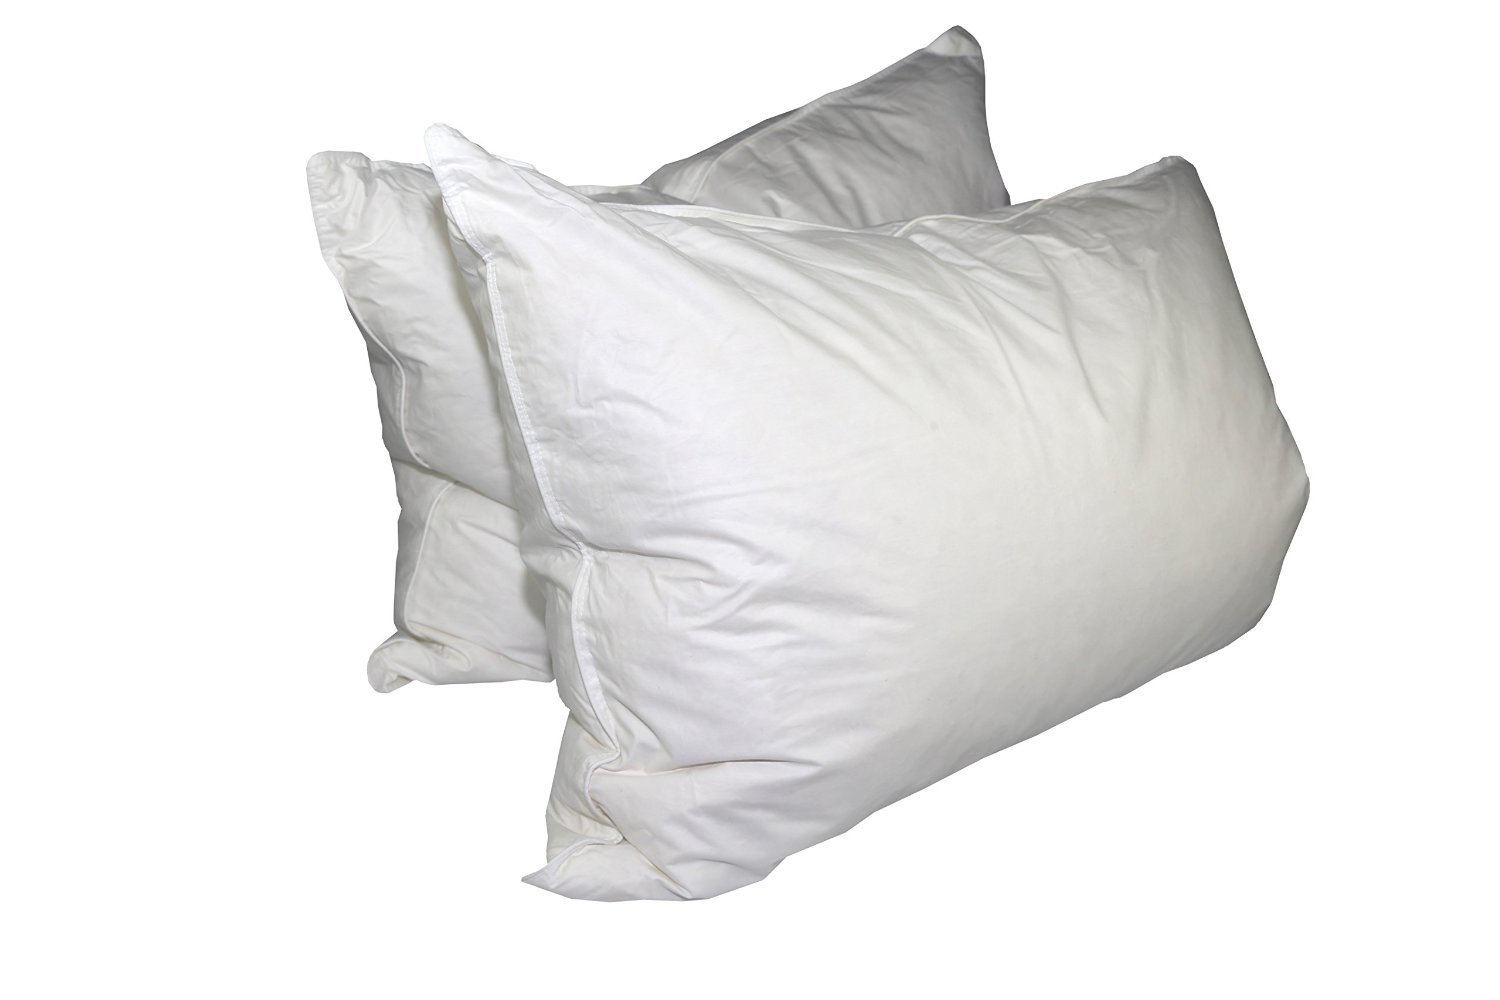 Pillowtex ® Hotel Feather and Down Standard Size Pillow Set (Includes 2 Standard Size Pillows)